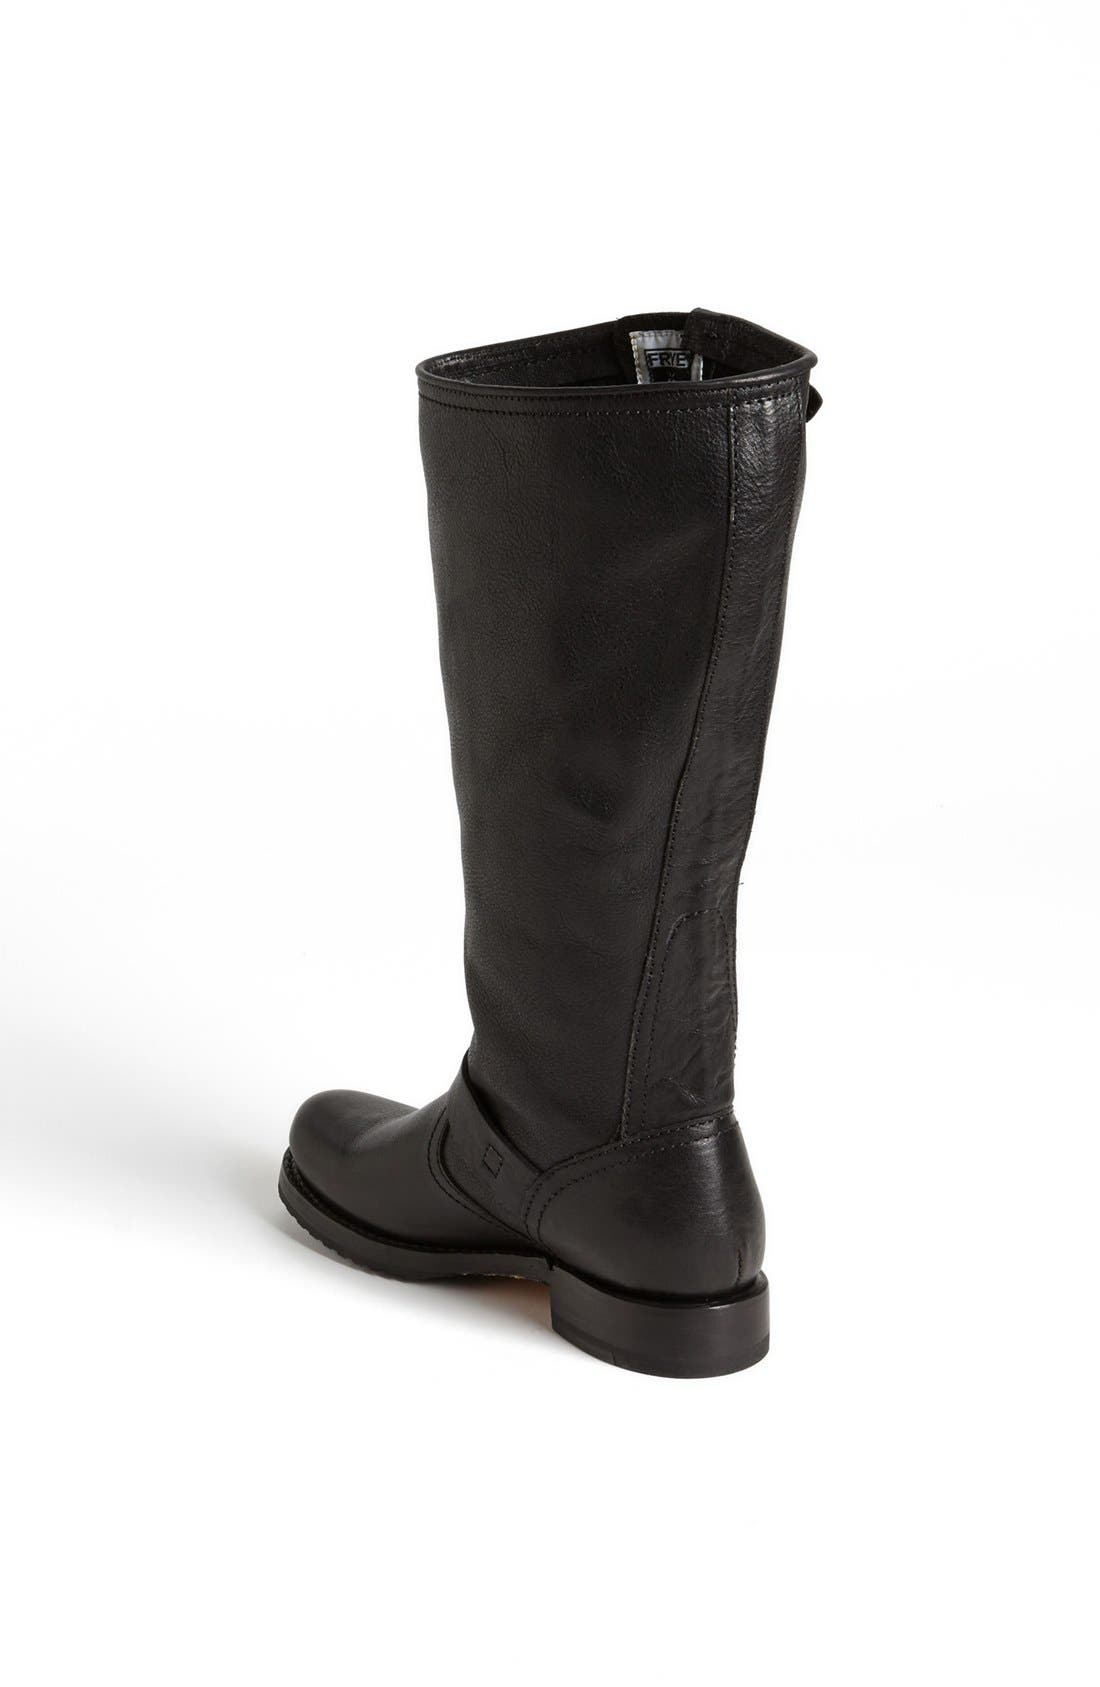 Alternate Image 3  - Frye 'Veronica Slouch' Boot (Wide Calf) (Women)